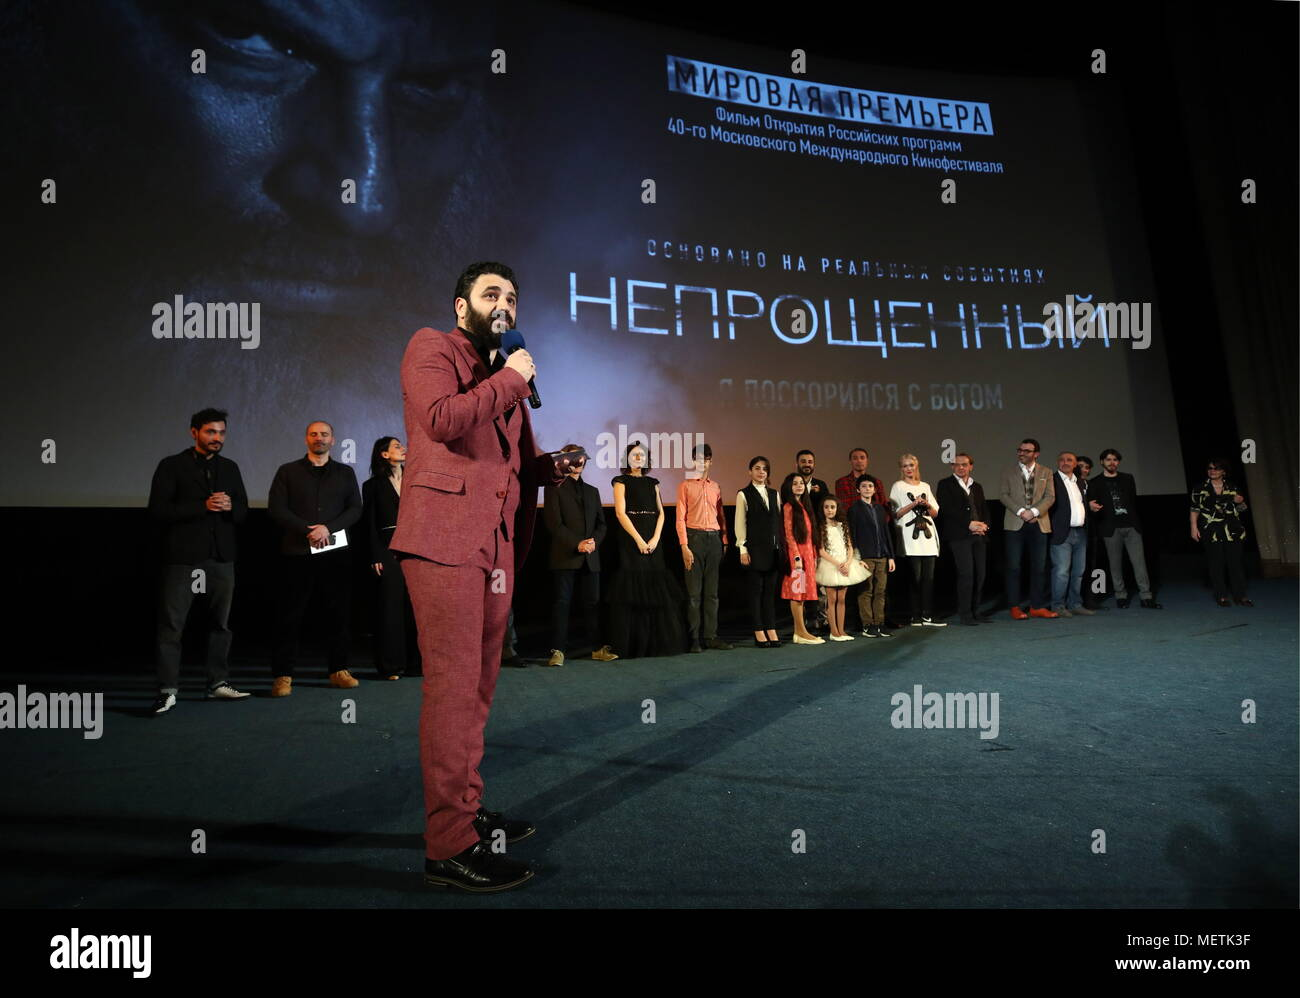 Moscow, Russia. 20th Apr, 2018. MOSCOW, RUSSIA - APRIL 20, 2018: Film director Sarik Andreasyan at a preview screening of his 2018 drama film Neproshchyonny (Unforgiven) at the House of Cinematographers at the 40th Moscow International Film Festival. Valery Sharifulin/TASS Credit: ITAR-TASS News Agency/Alamy Live News - Stock Image